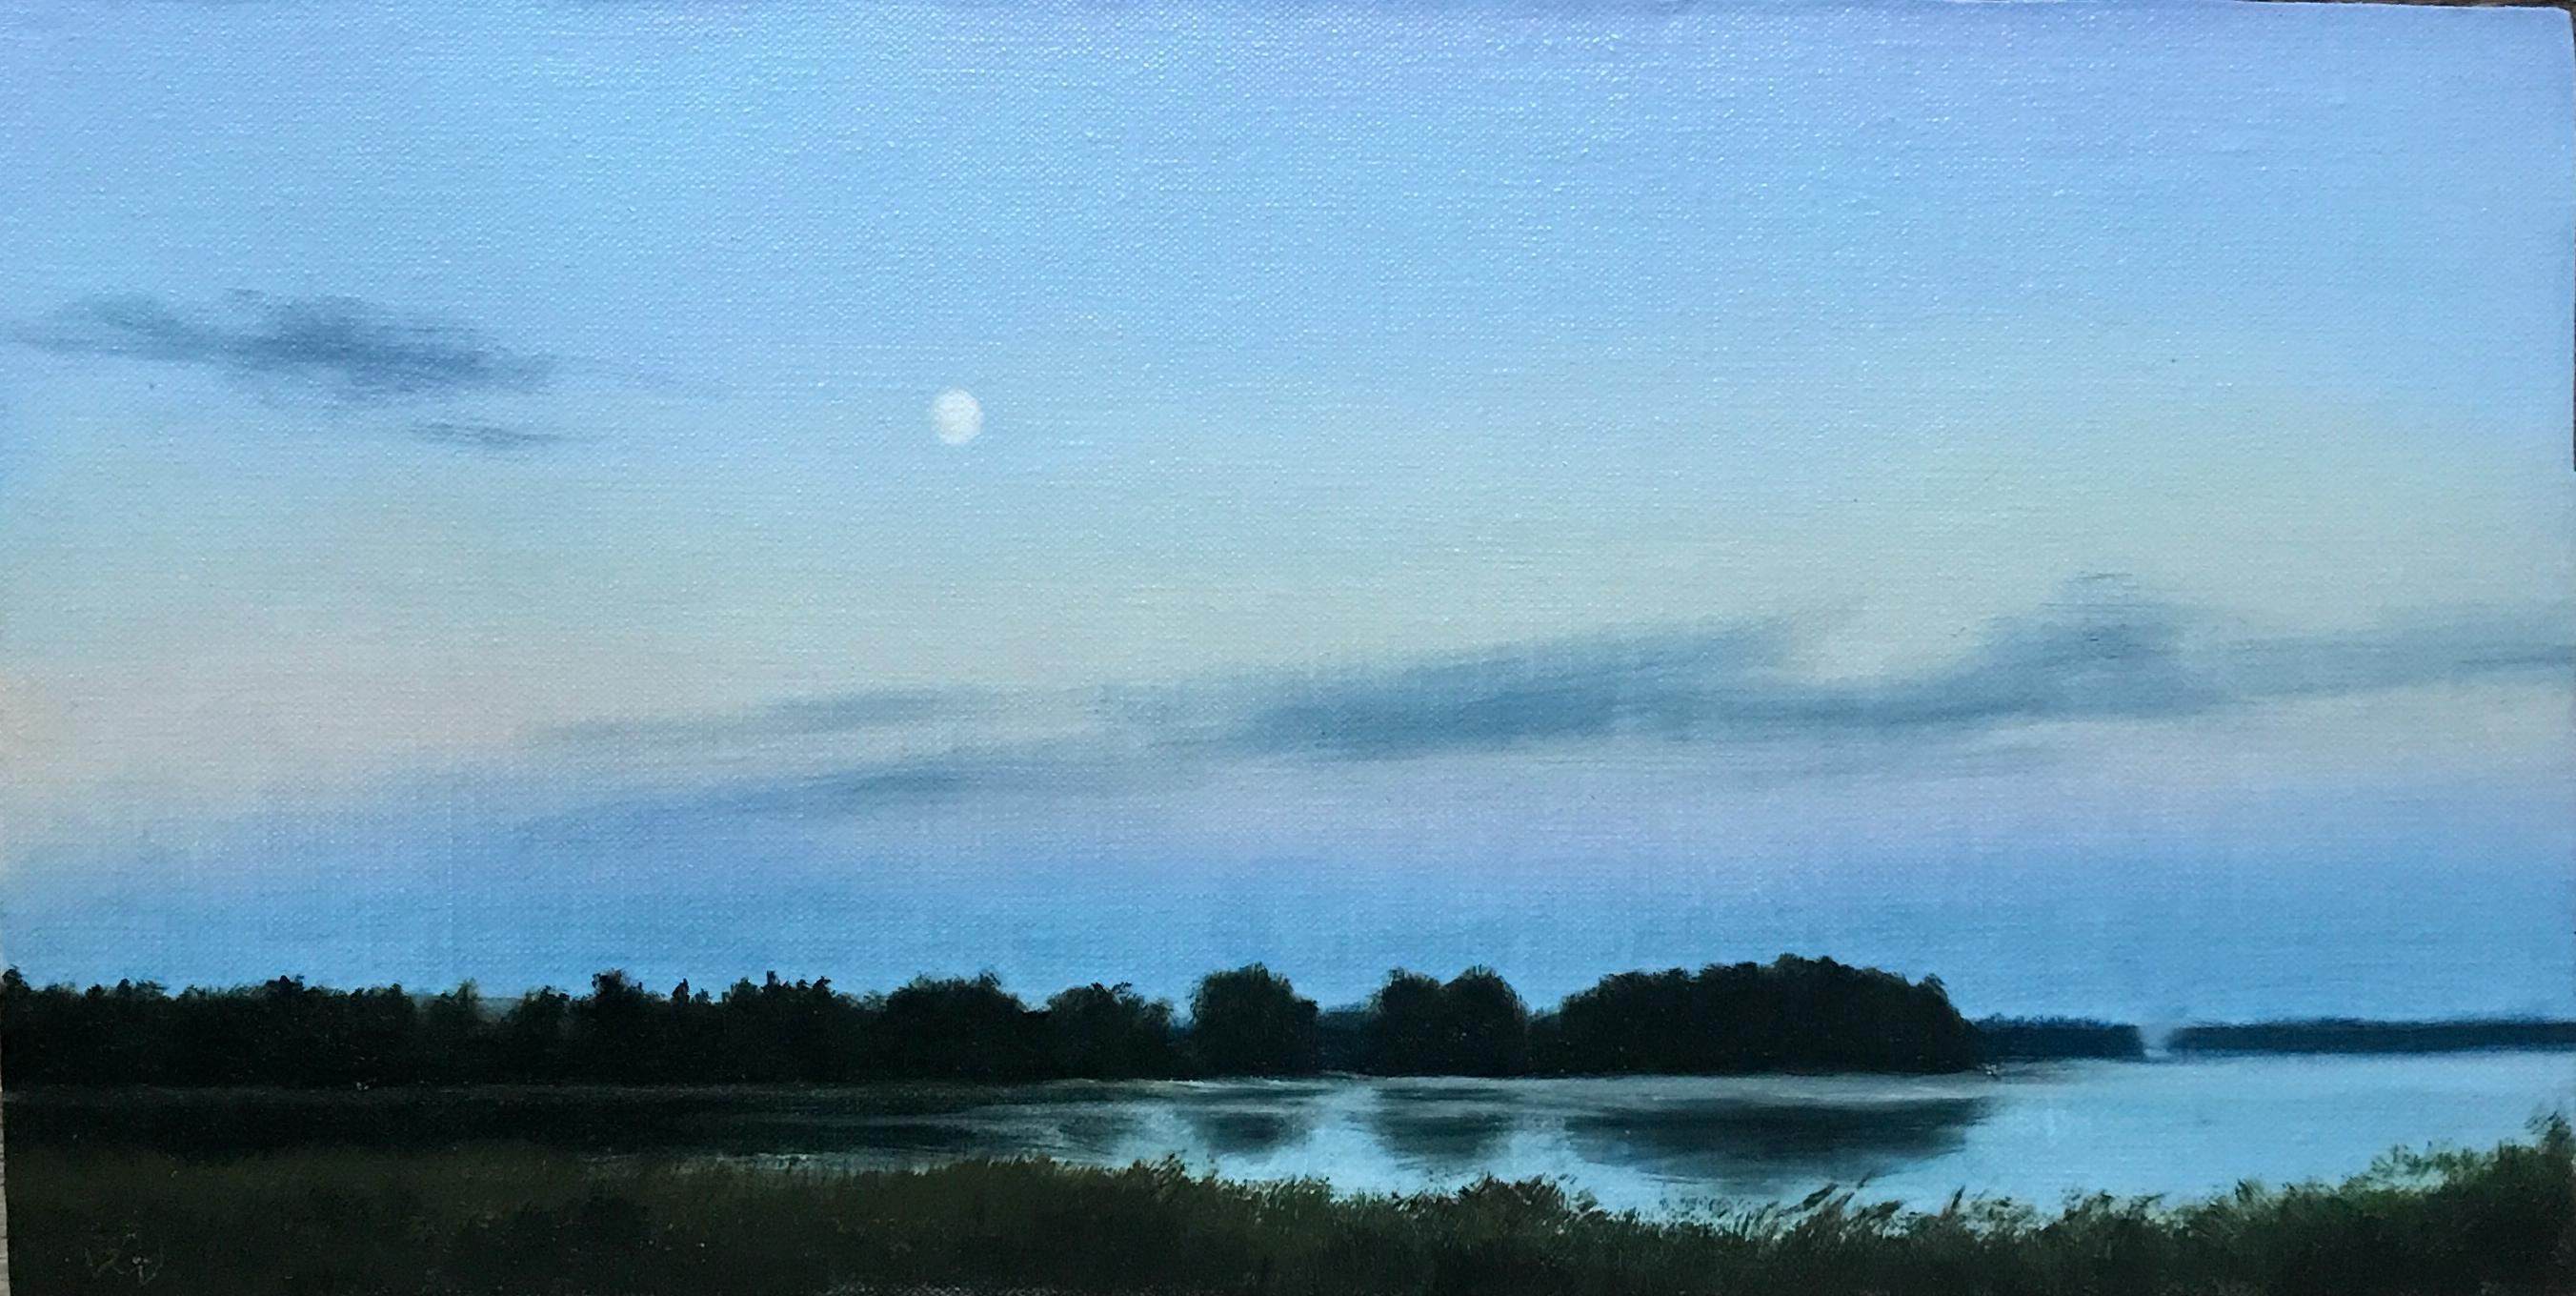 Finnish Landscape, Moon Over a Lake 2, Rafael Guerra Painting Pintura